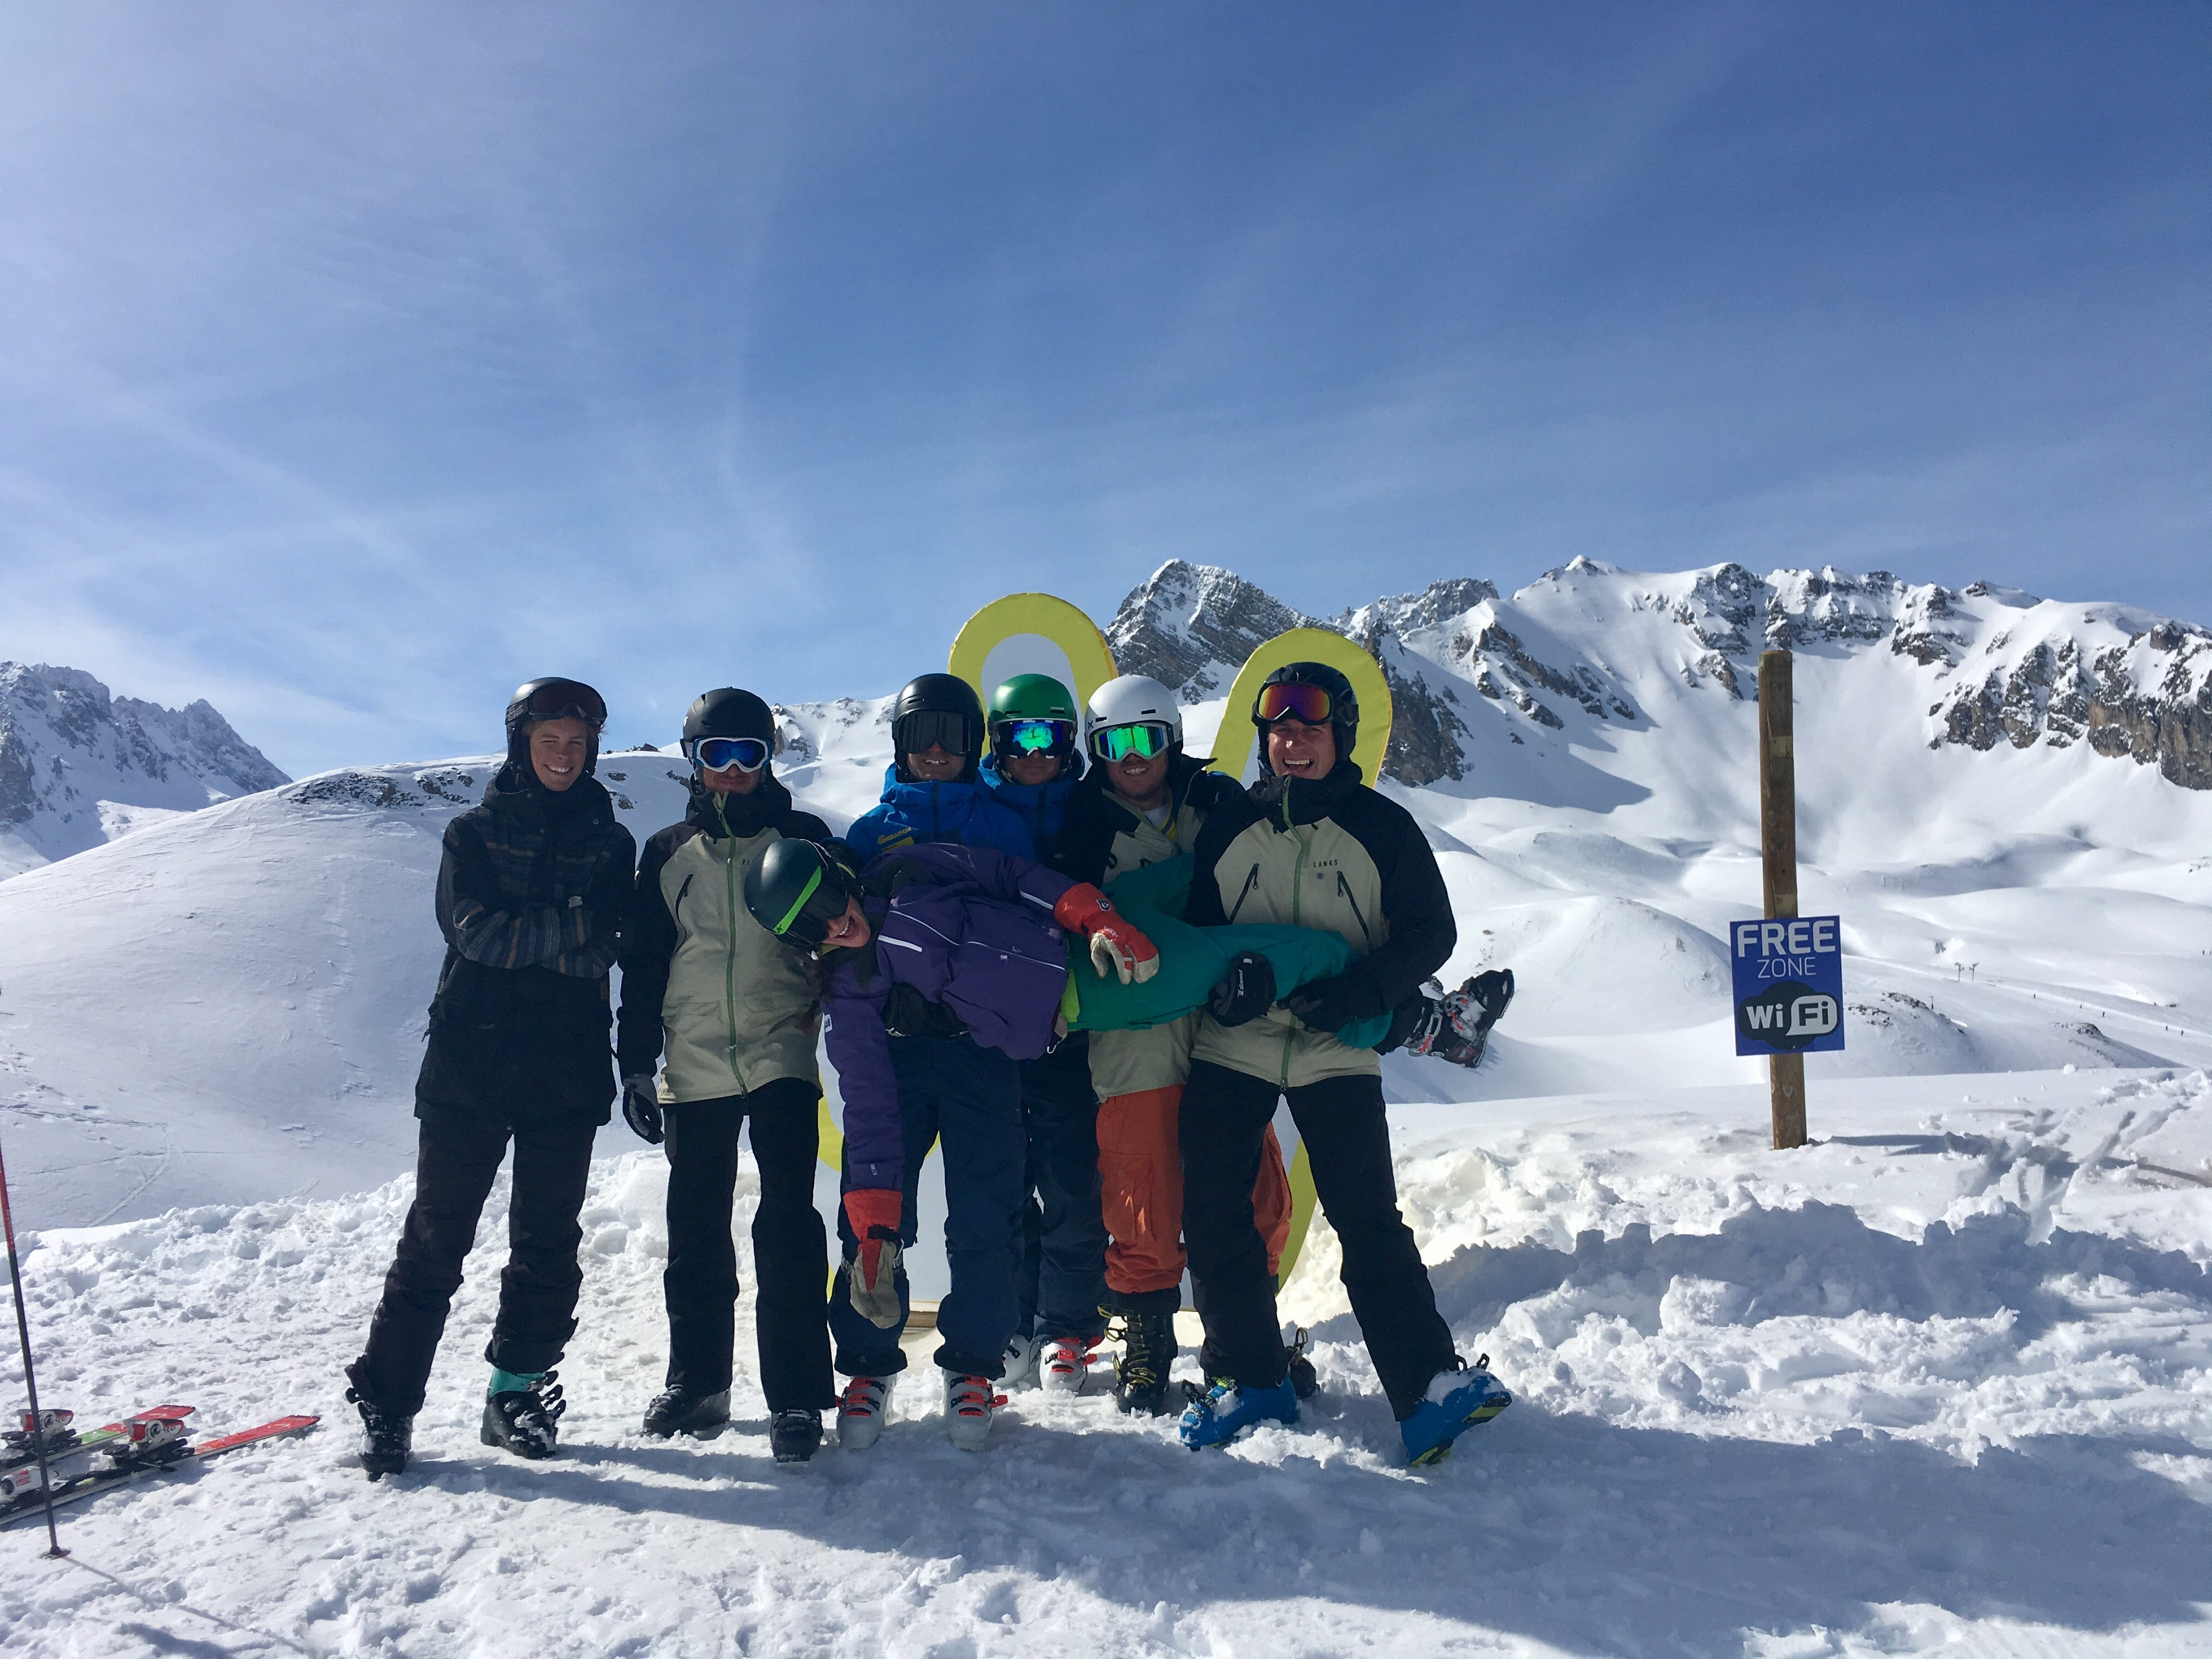 Courchevel gap ski instructor course students having fun